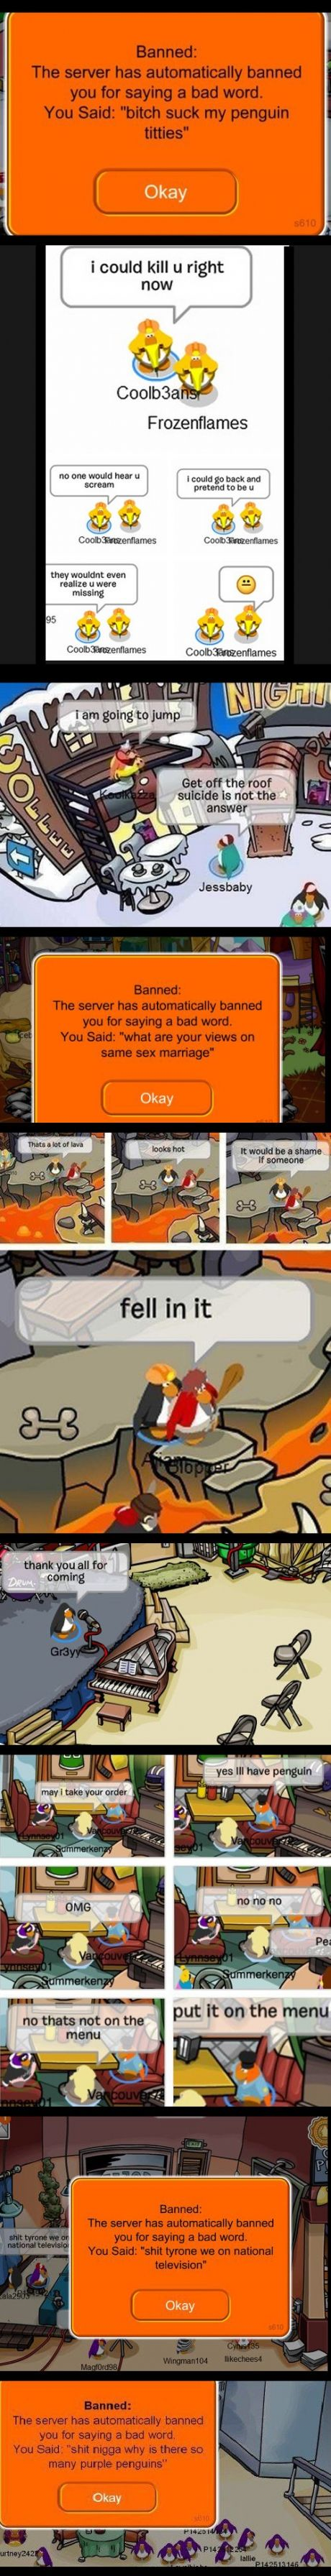 funny things said on club penguin